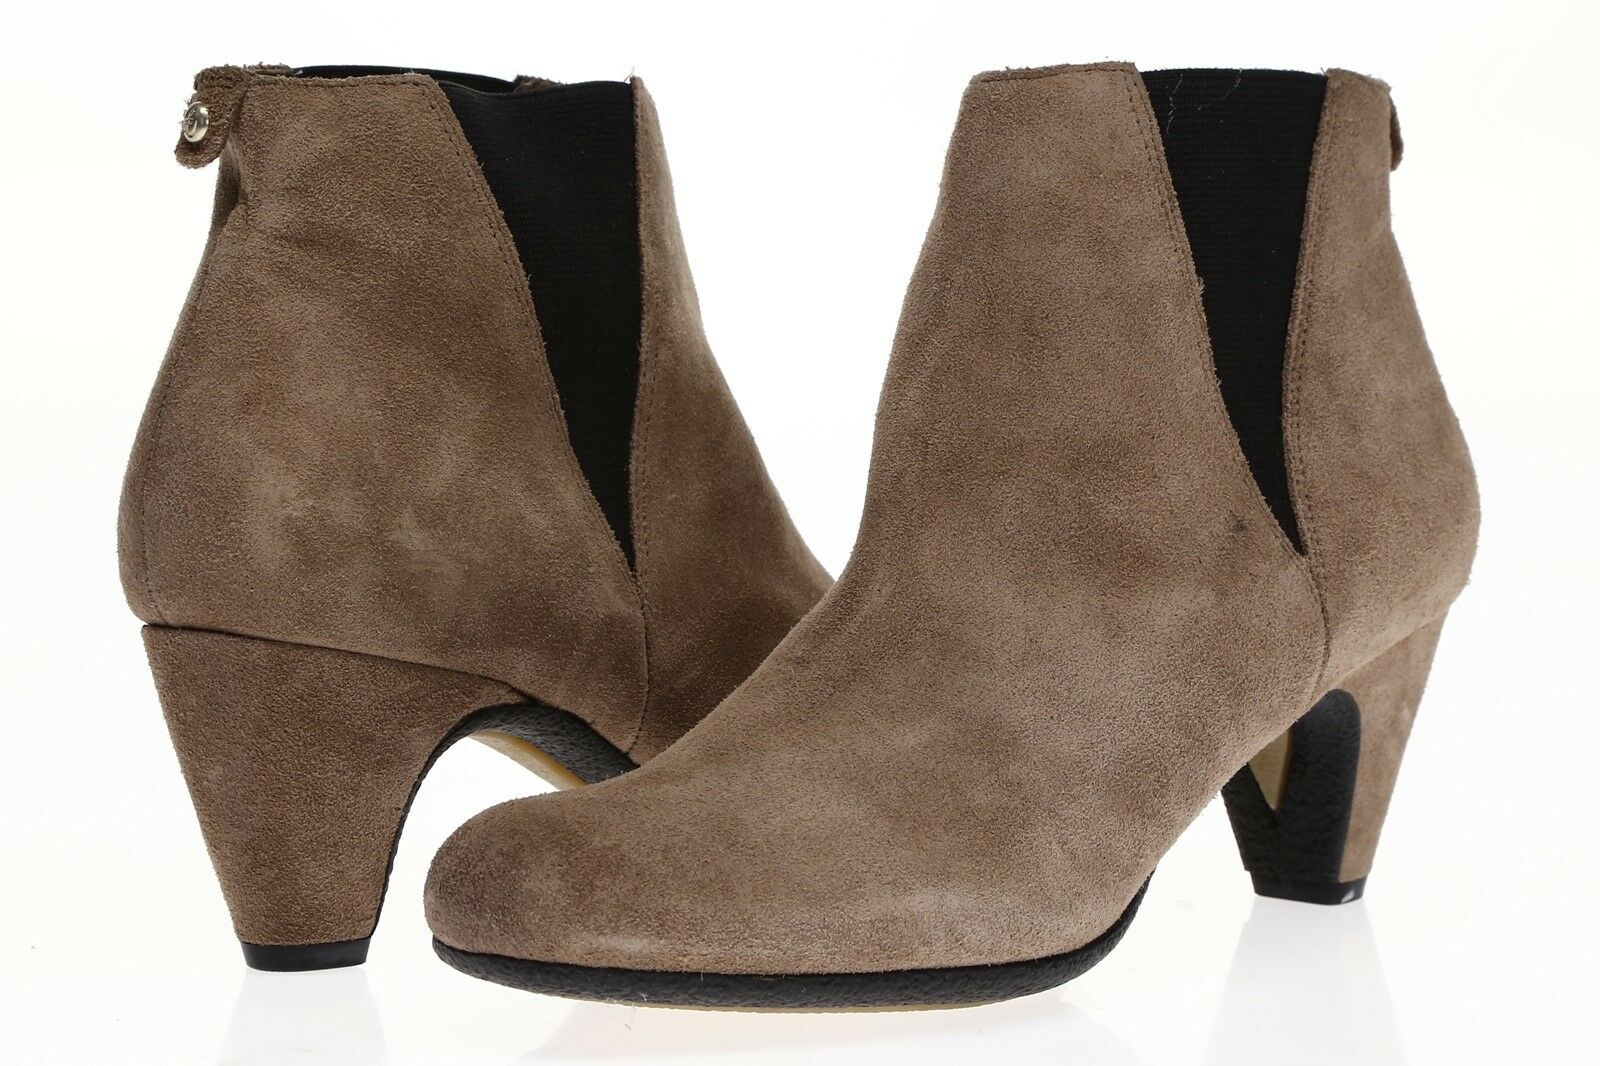 SAM EDELMAN Womens Taupe Suede Ankle Boots Sz 8 M NEW  220638